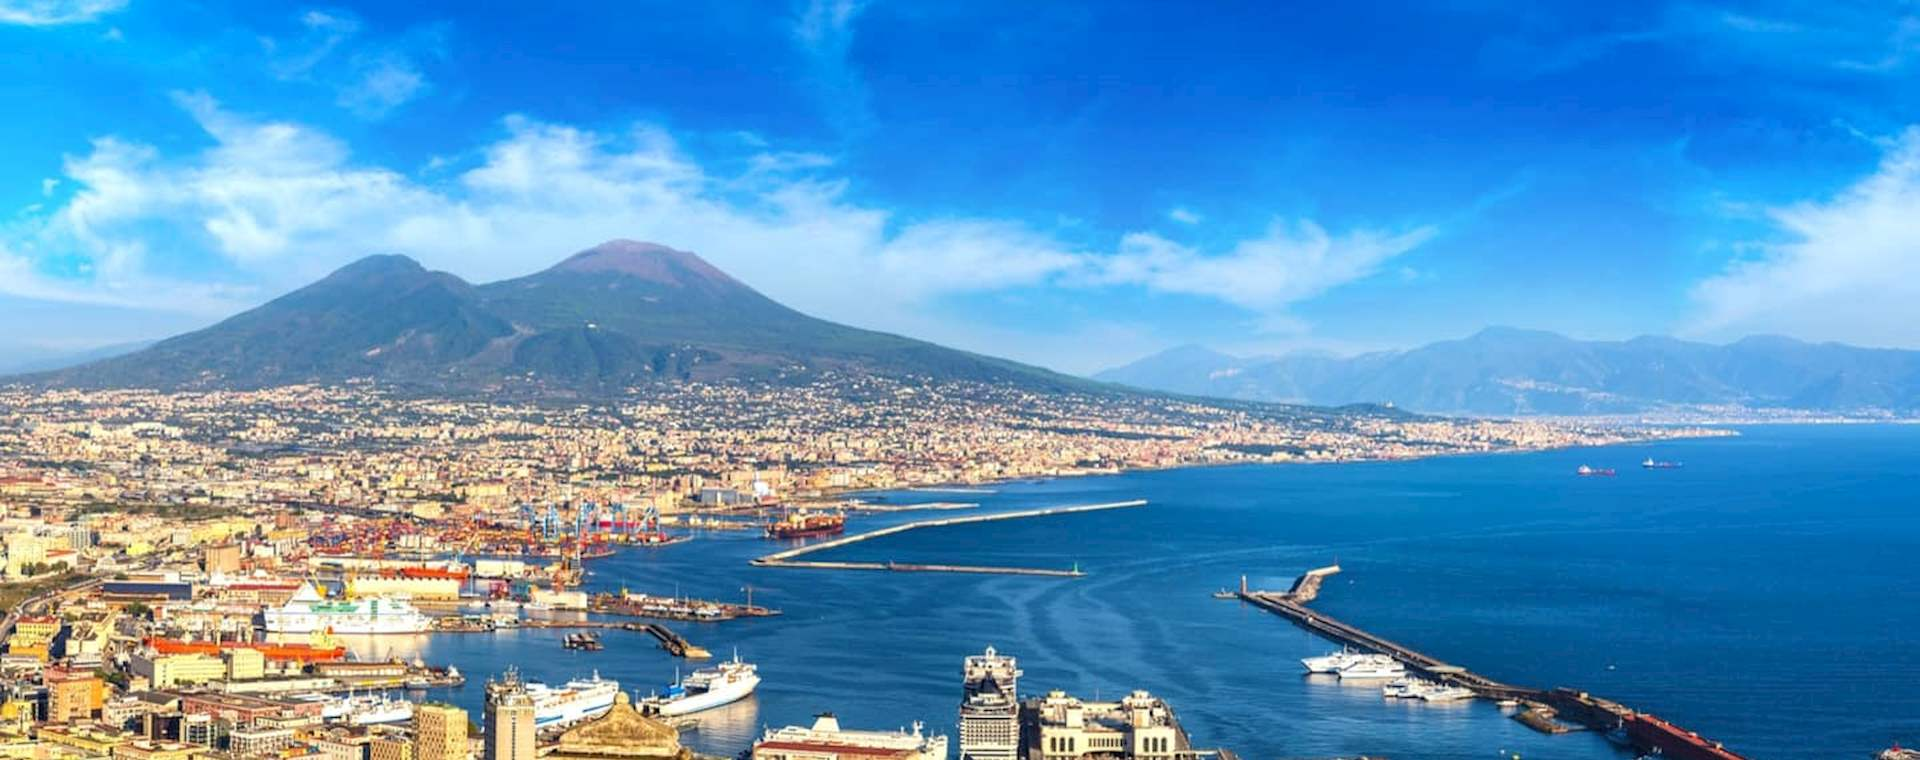 Best of Naples with Local Coffee Tasting